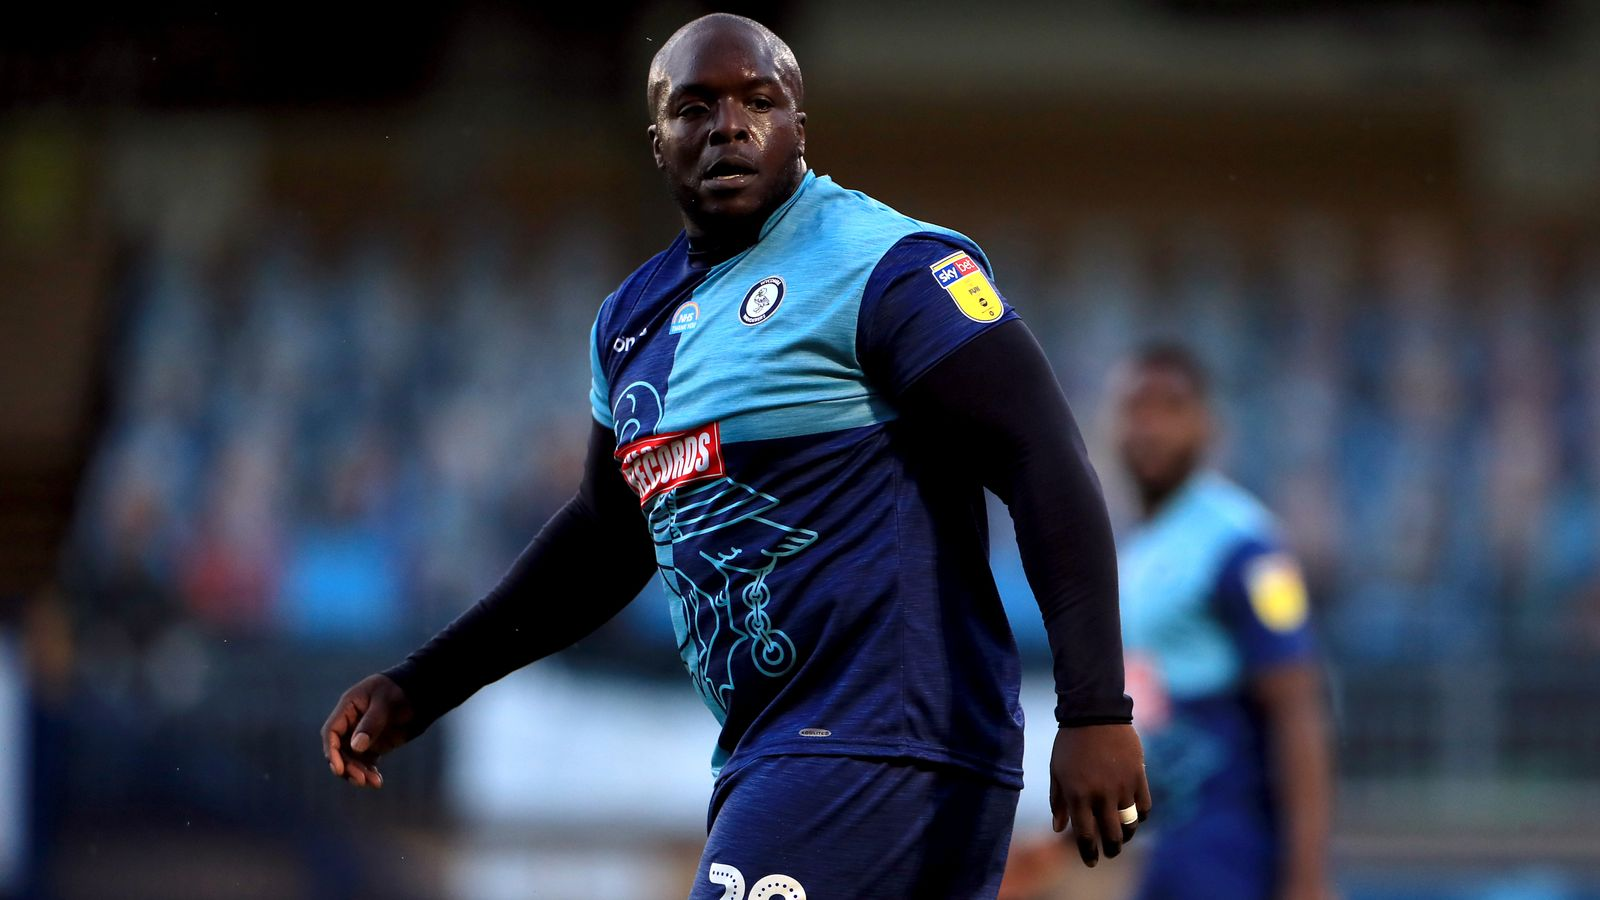 Adebayo Akinfenwa says he was called a 'Fat Water Buffalo' during play-off match thumbnail